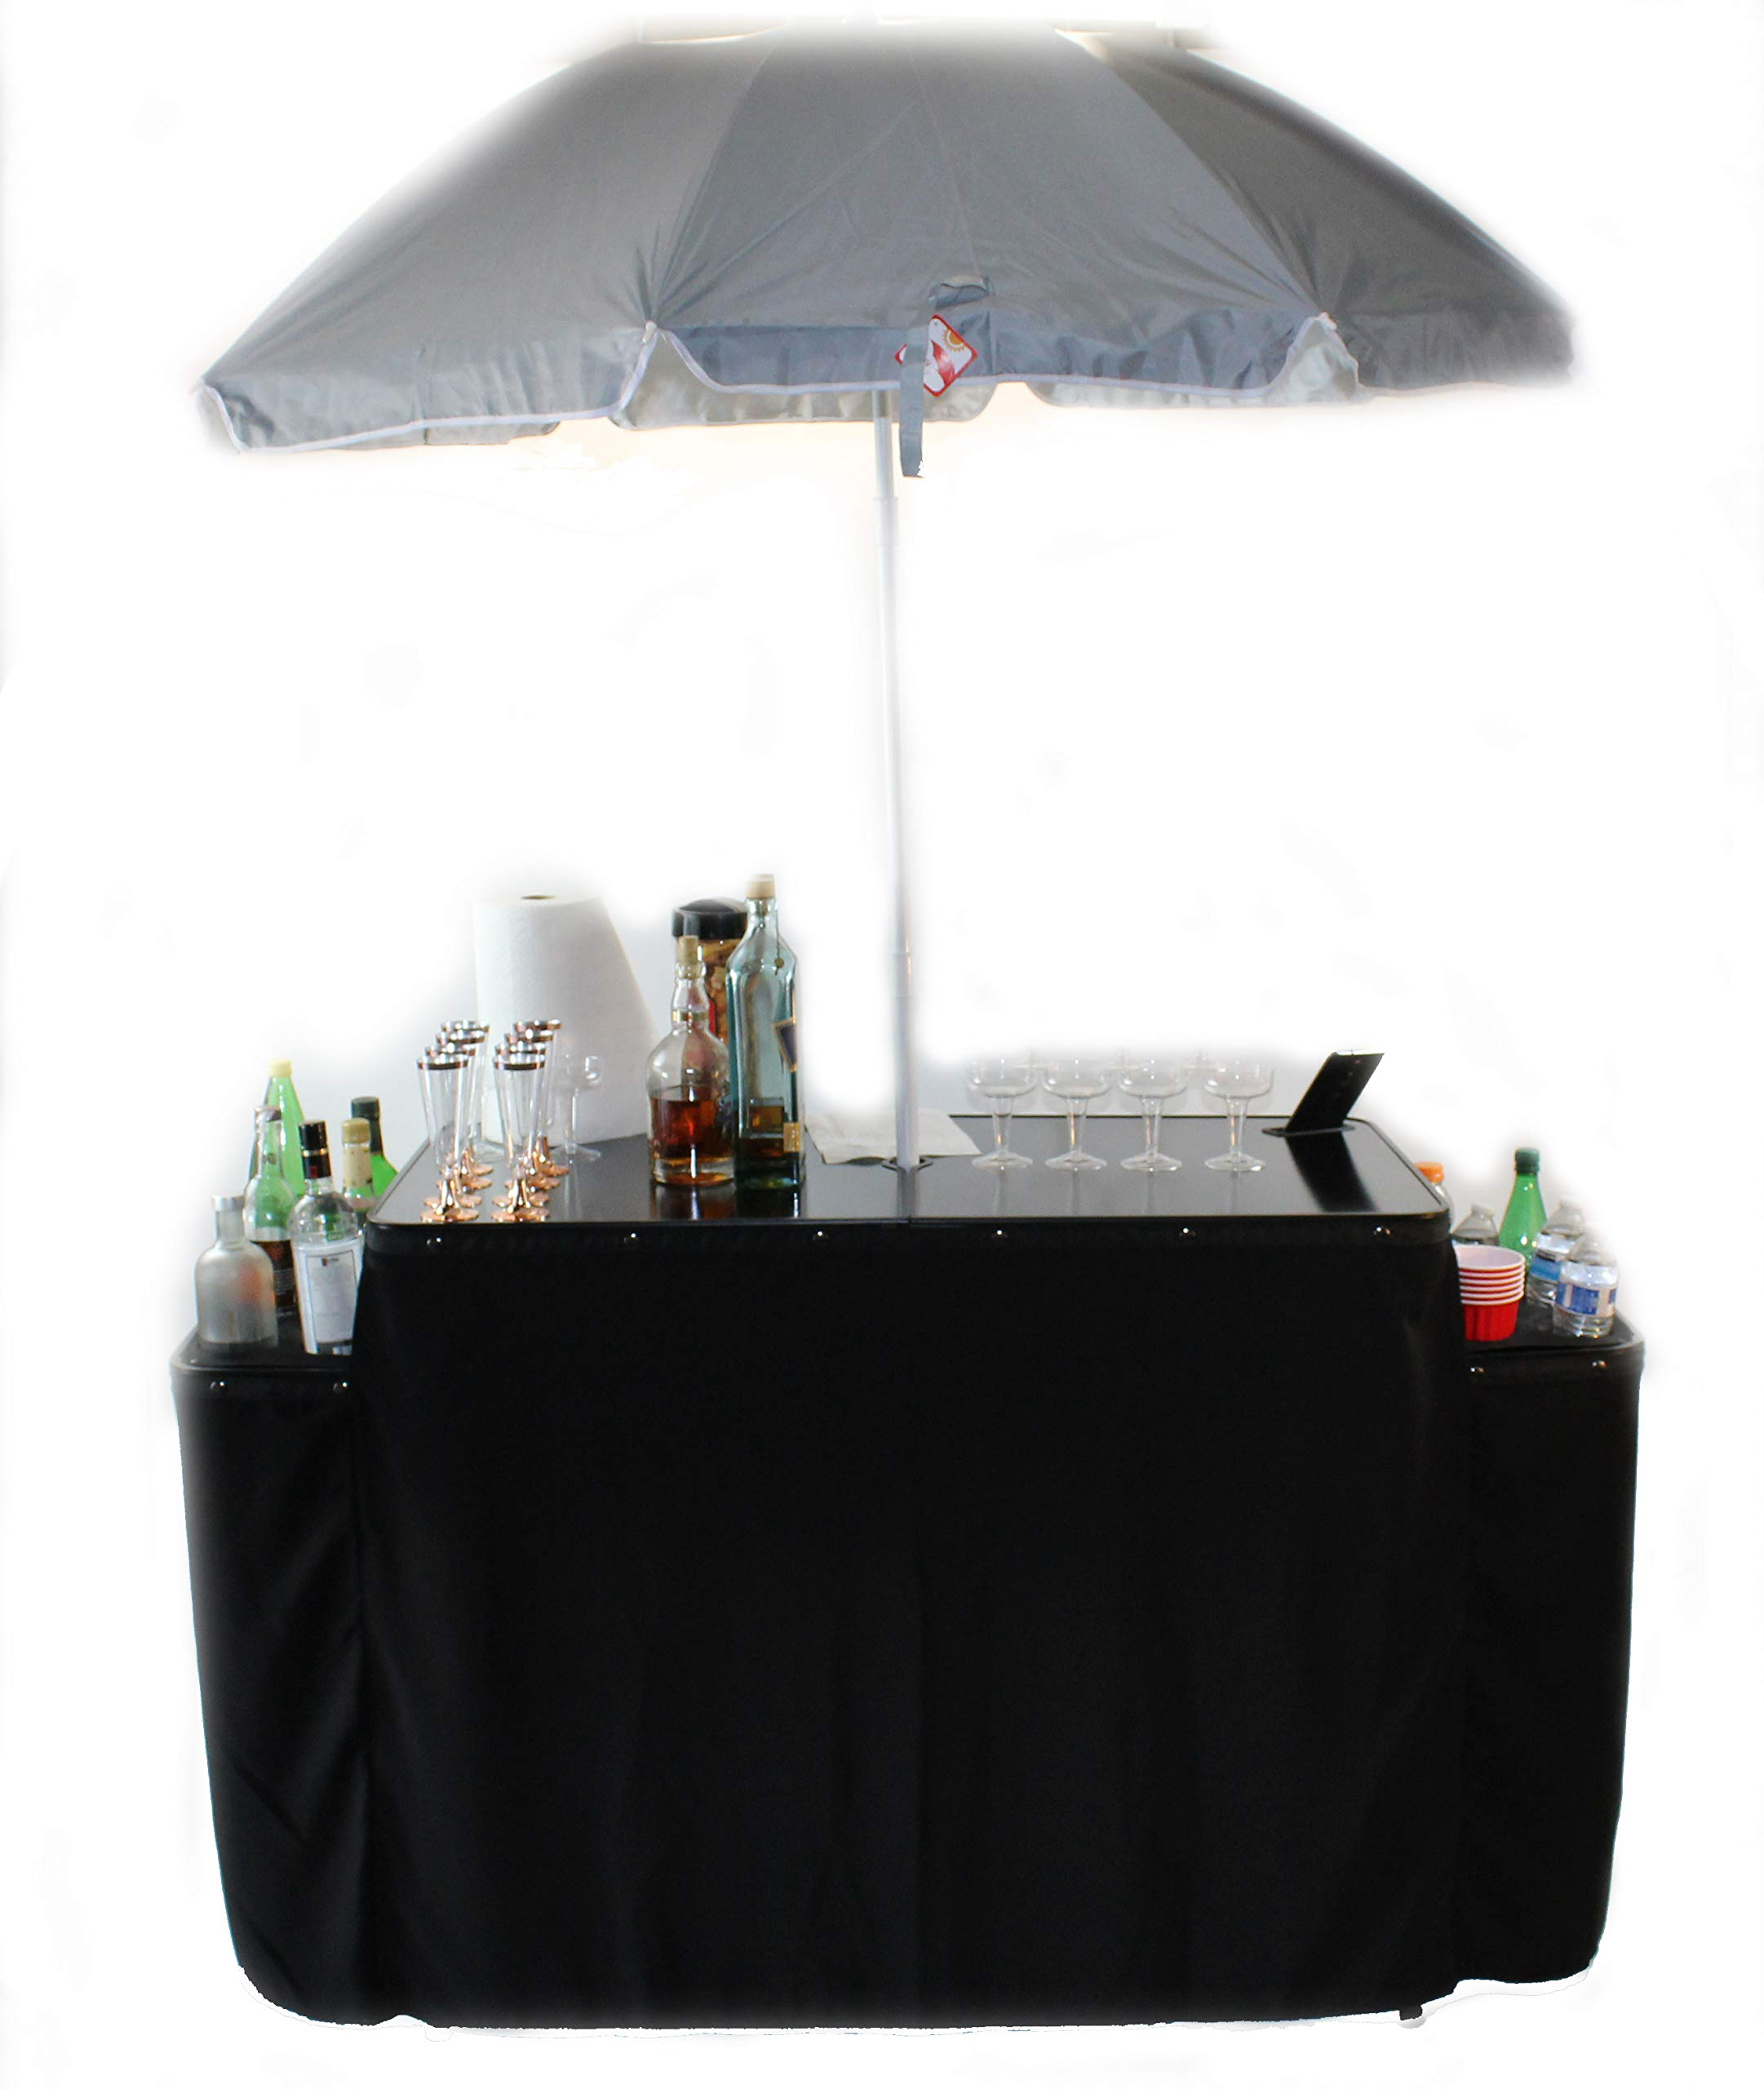 World Outdoor Products Professional Portable Folding Bartenders Table with Umbrella,Twelve Bottle Holders,Decorative Skirt, Custom Carry/Storage Bag